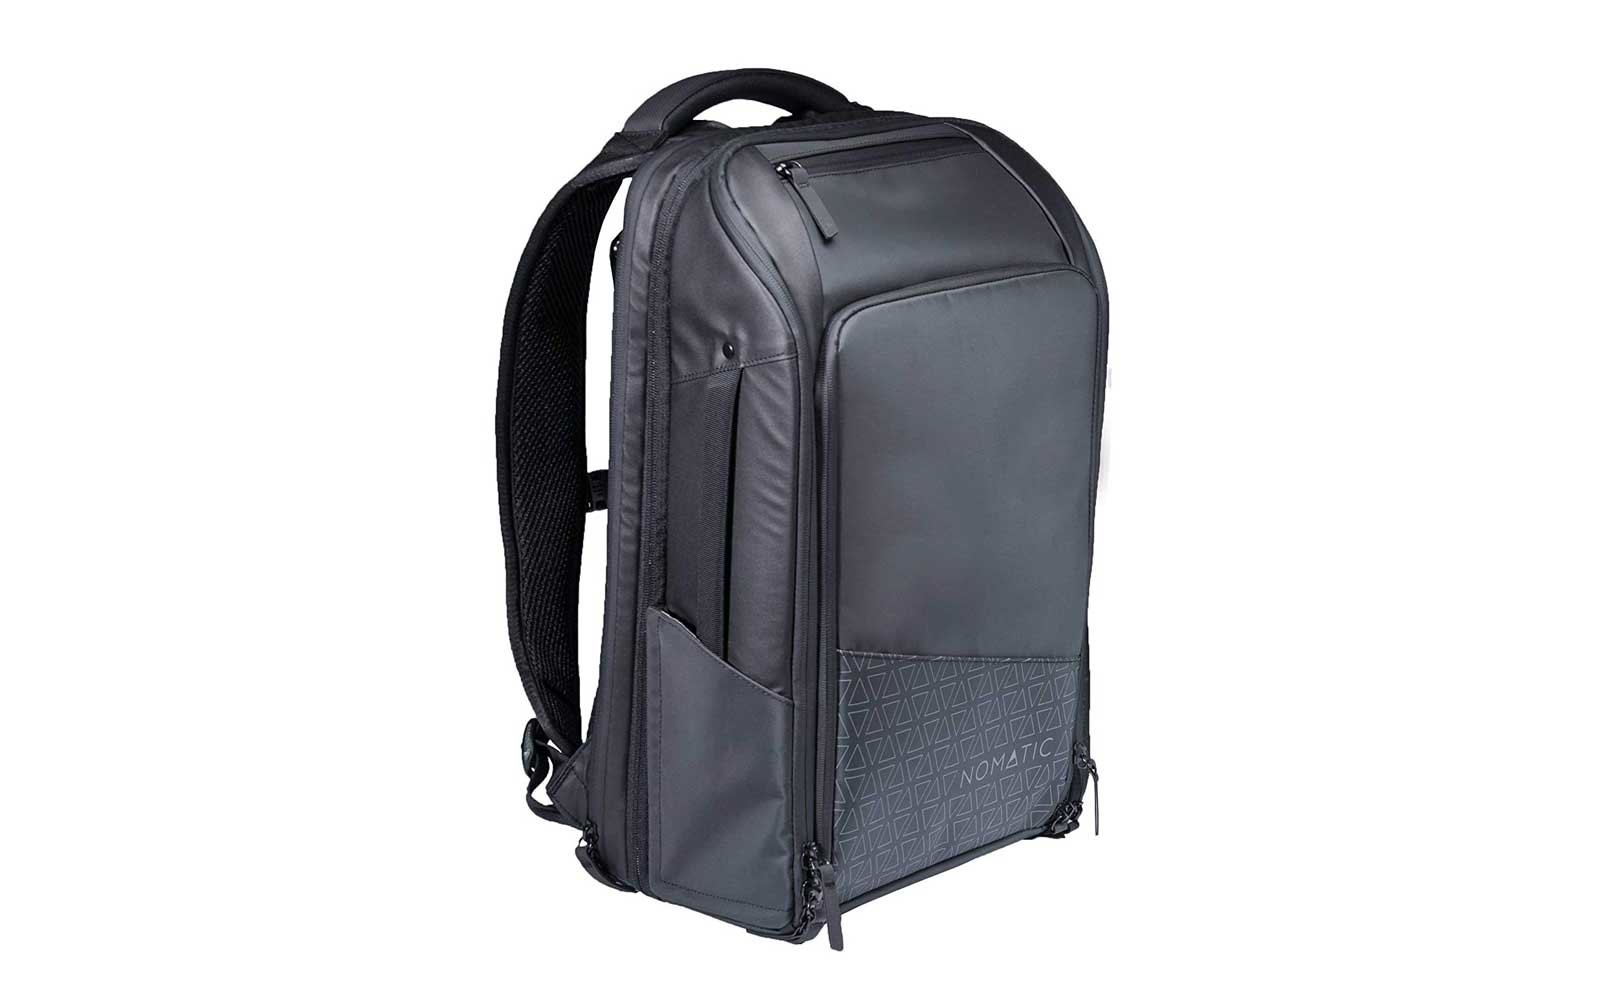 6bb67c5675 Best All-in-one Laptop Backpack  Nomatic Travel Pack